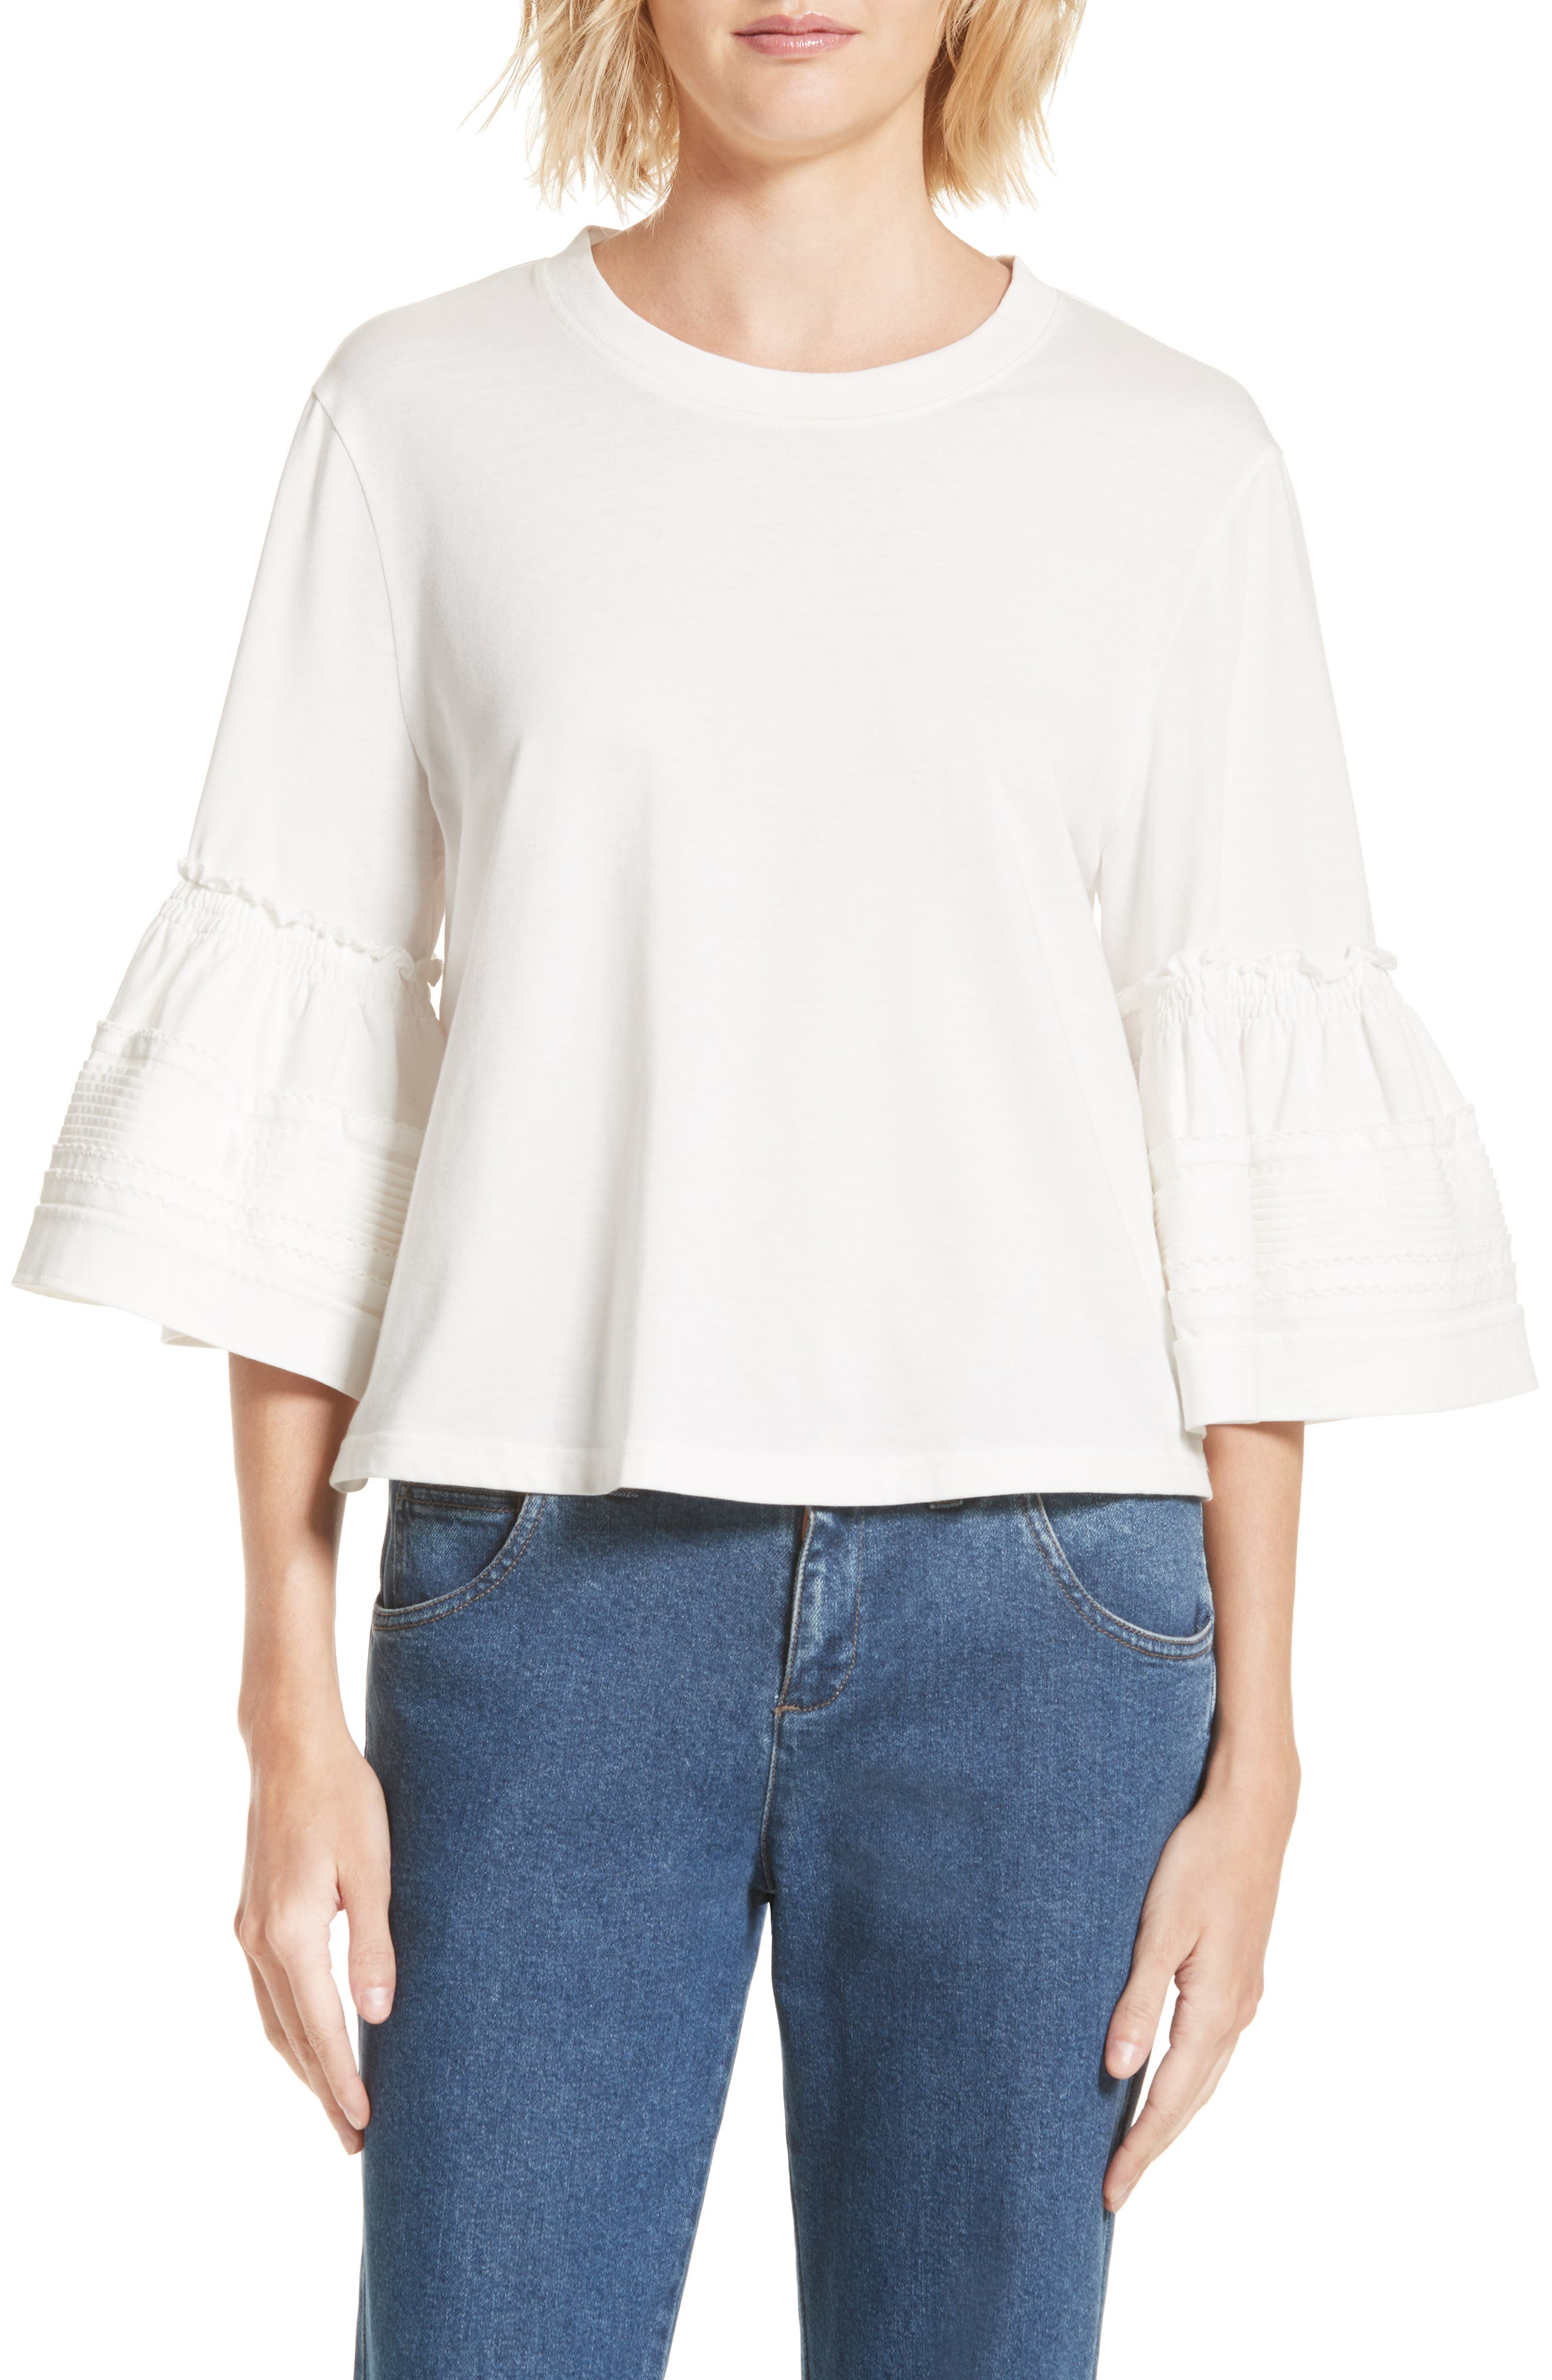 Main Image - See by Chloé Bell Sleeve Top